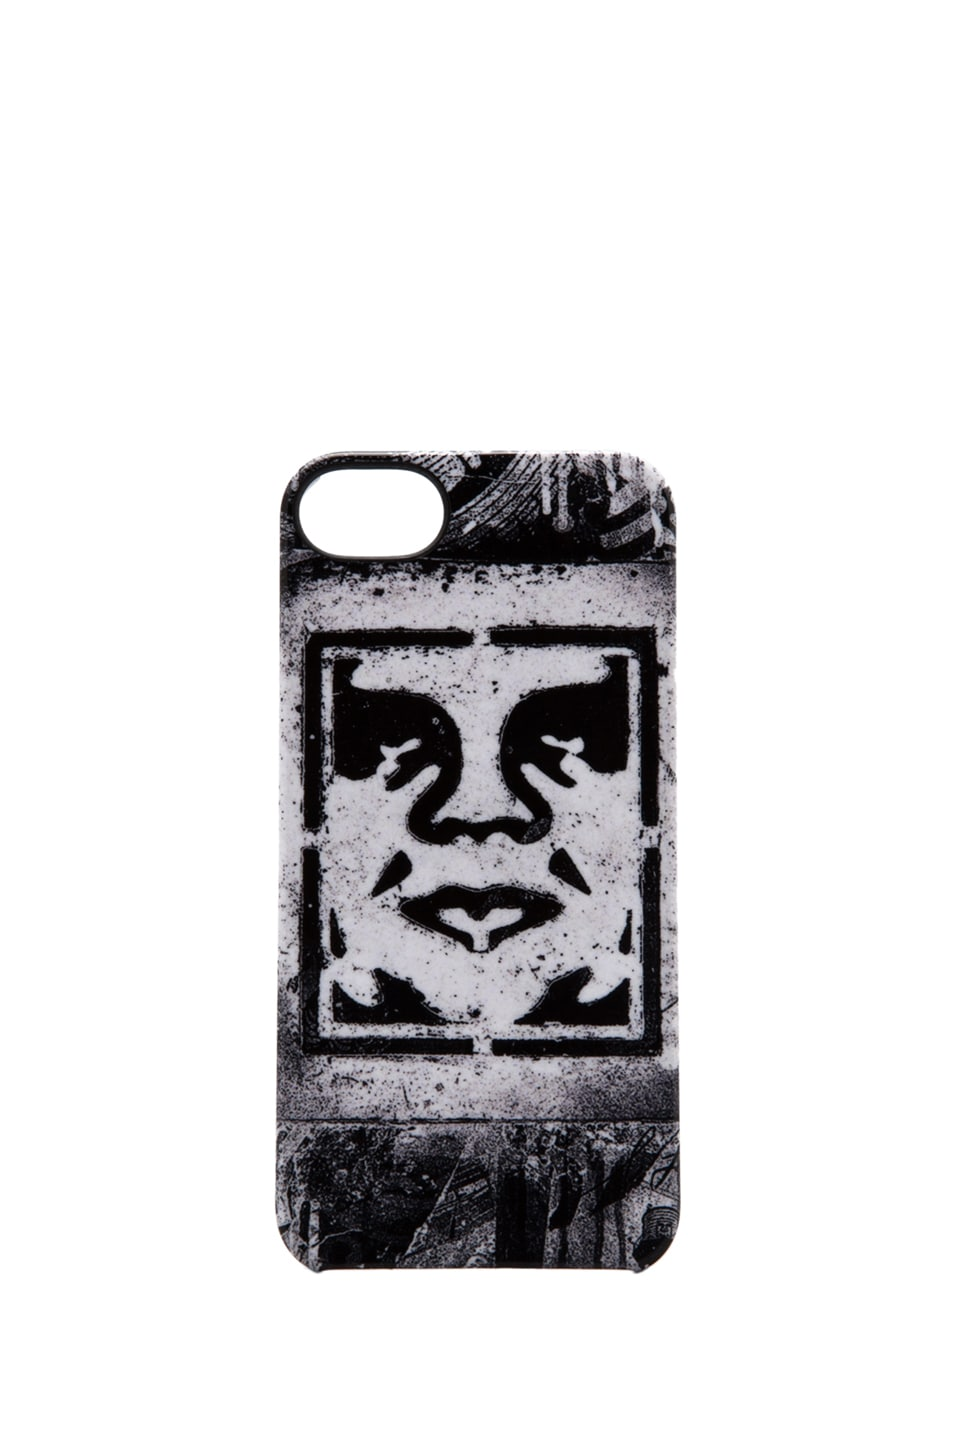 INCASE Shepard Fairey iPhone 5 Snap Case in Icon Stencil White